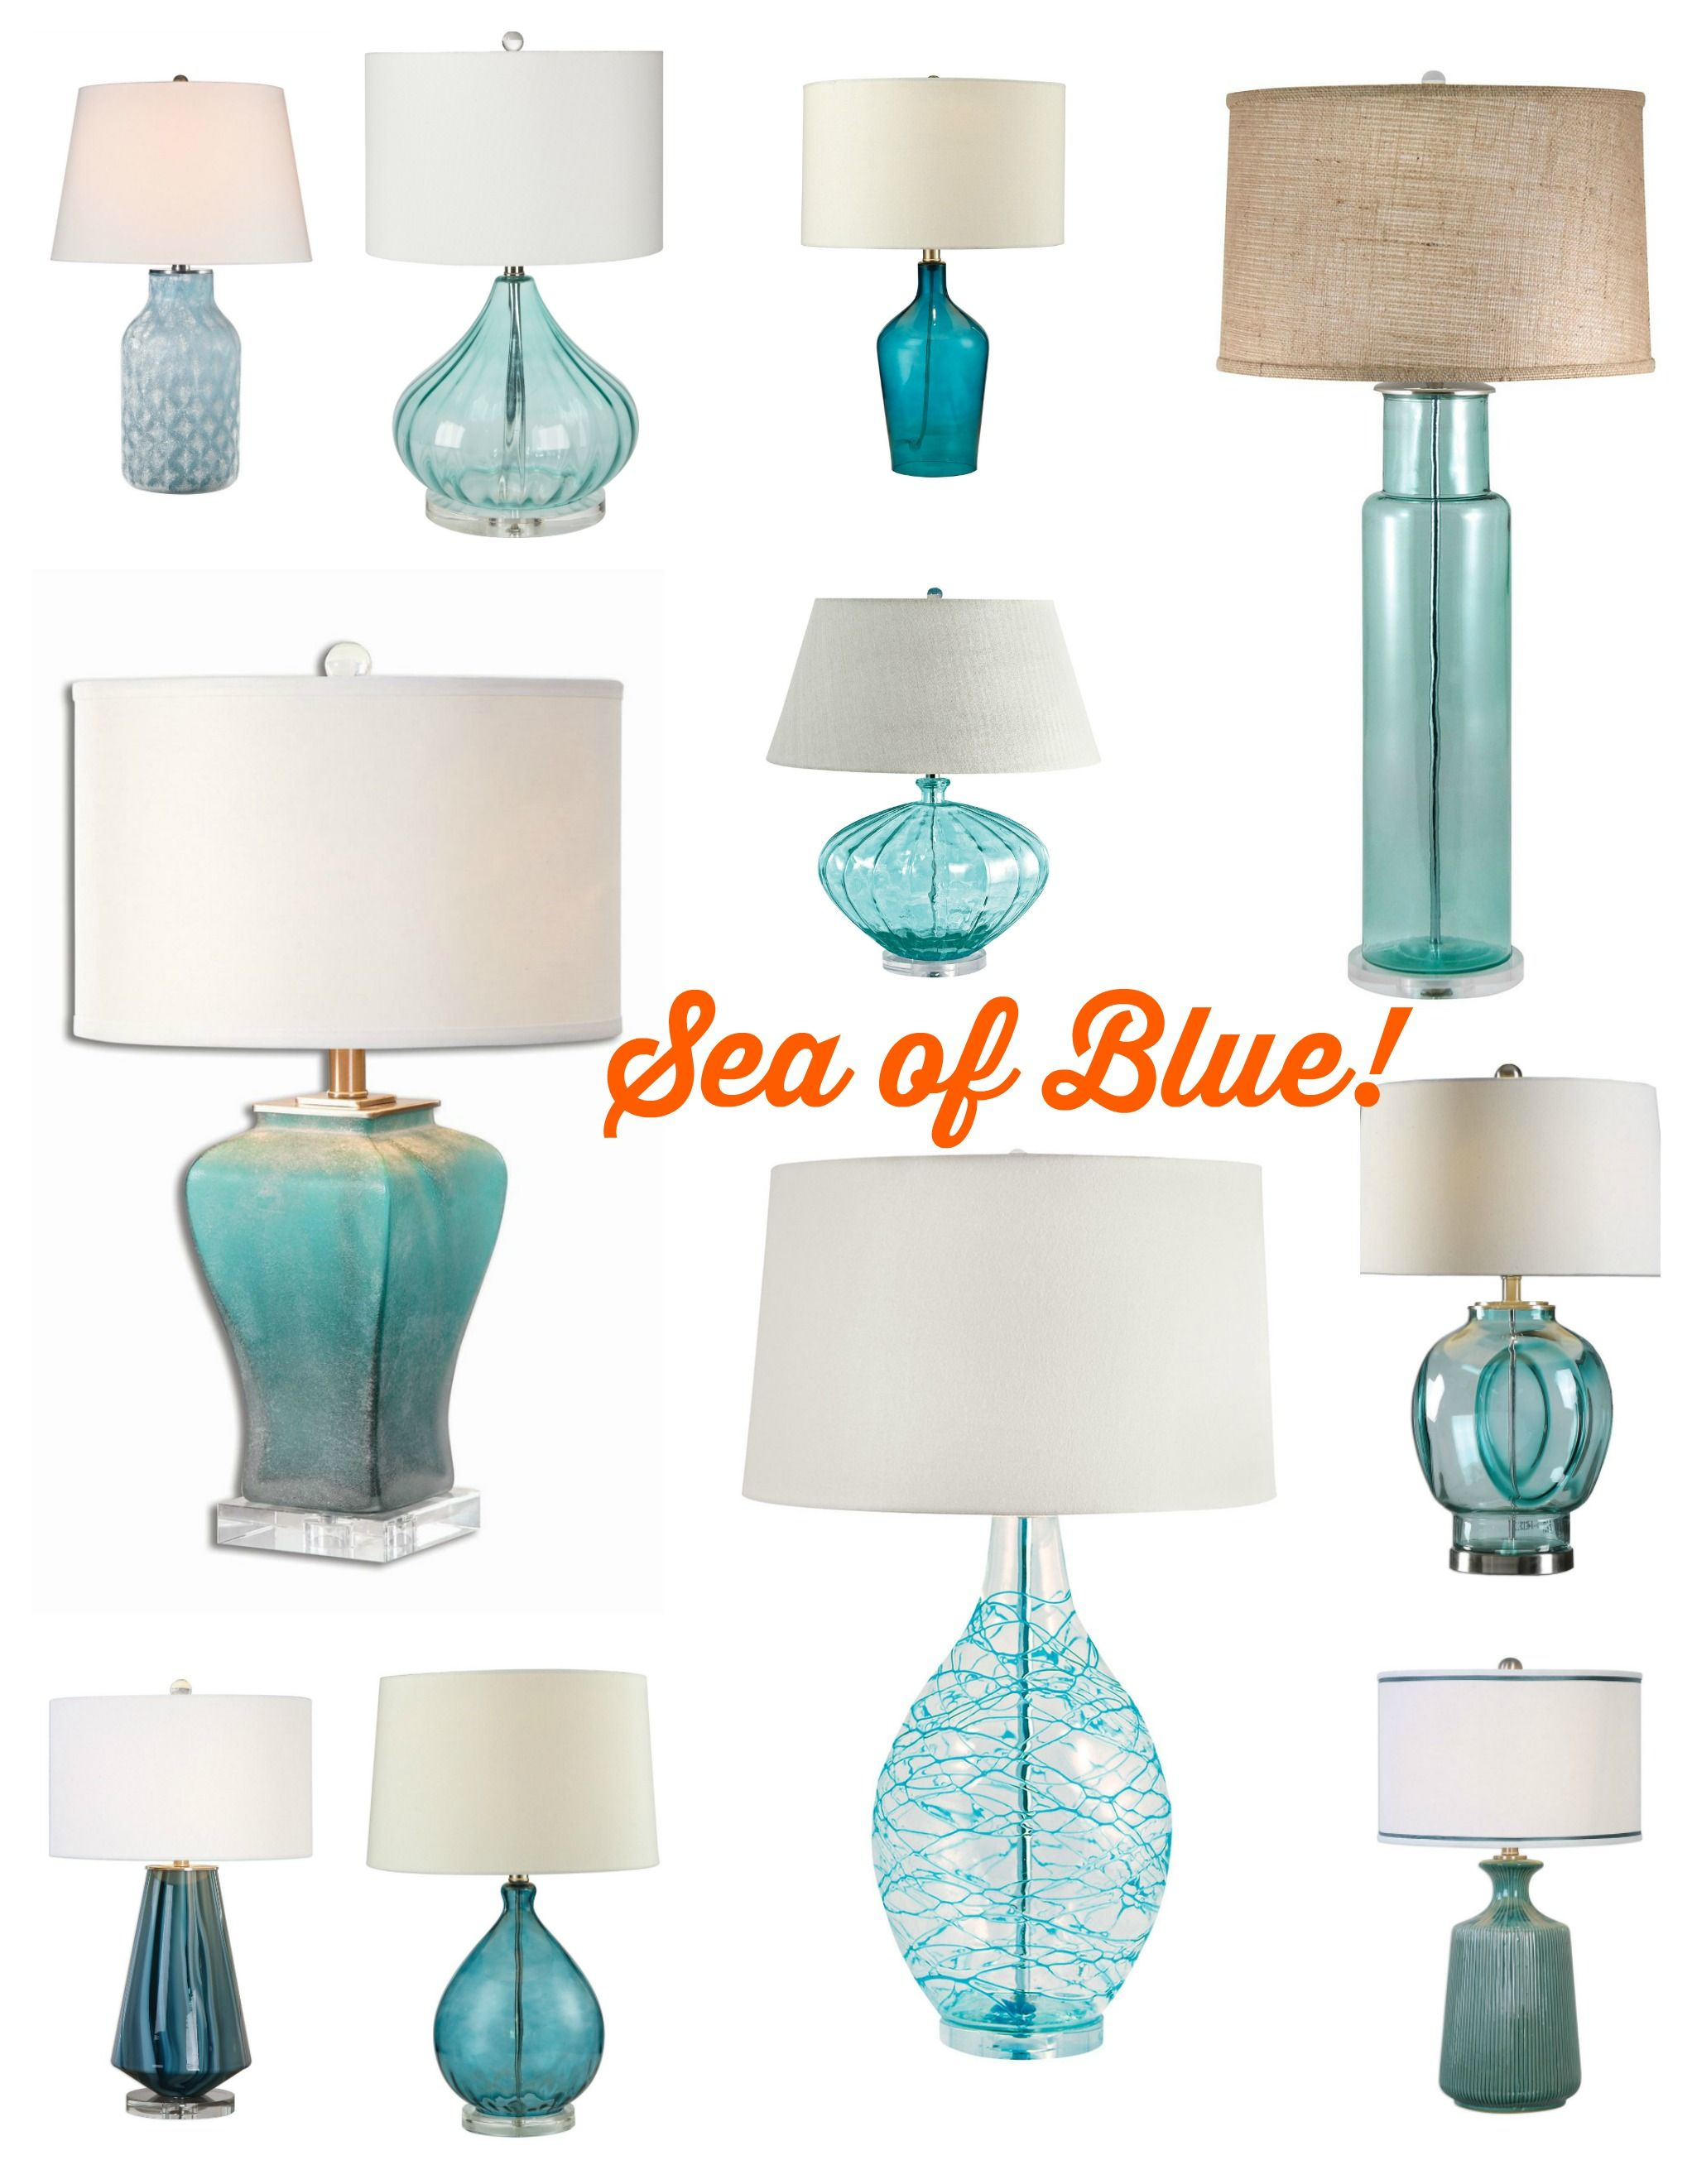 A Sea of Blue and Aqua lighting options - Let us help you choose!  sc 1 st  Pinterest : sea themed lighting - azcodes.com